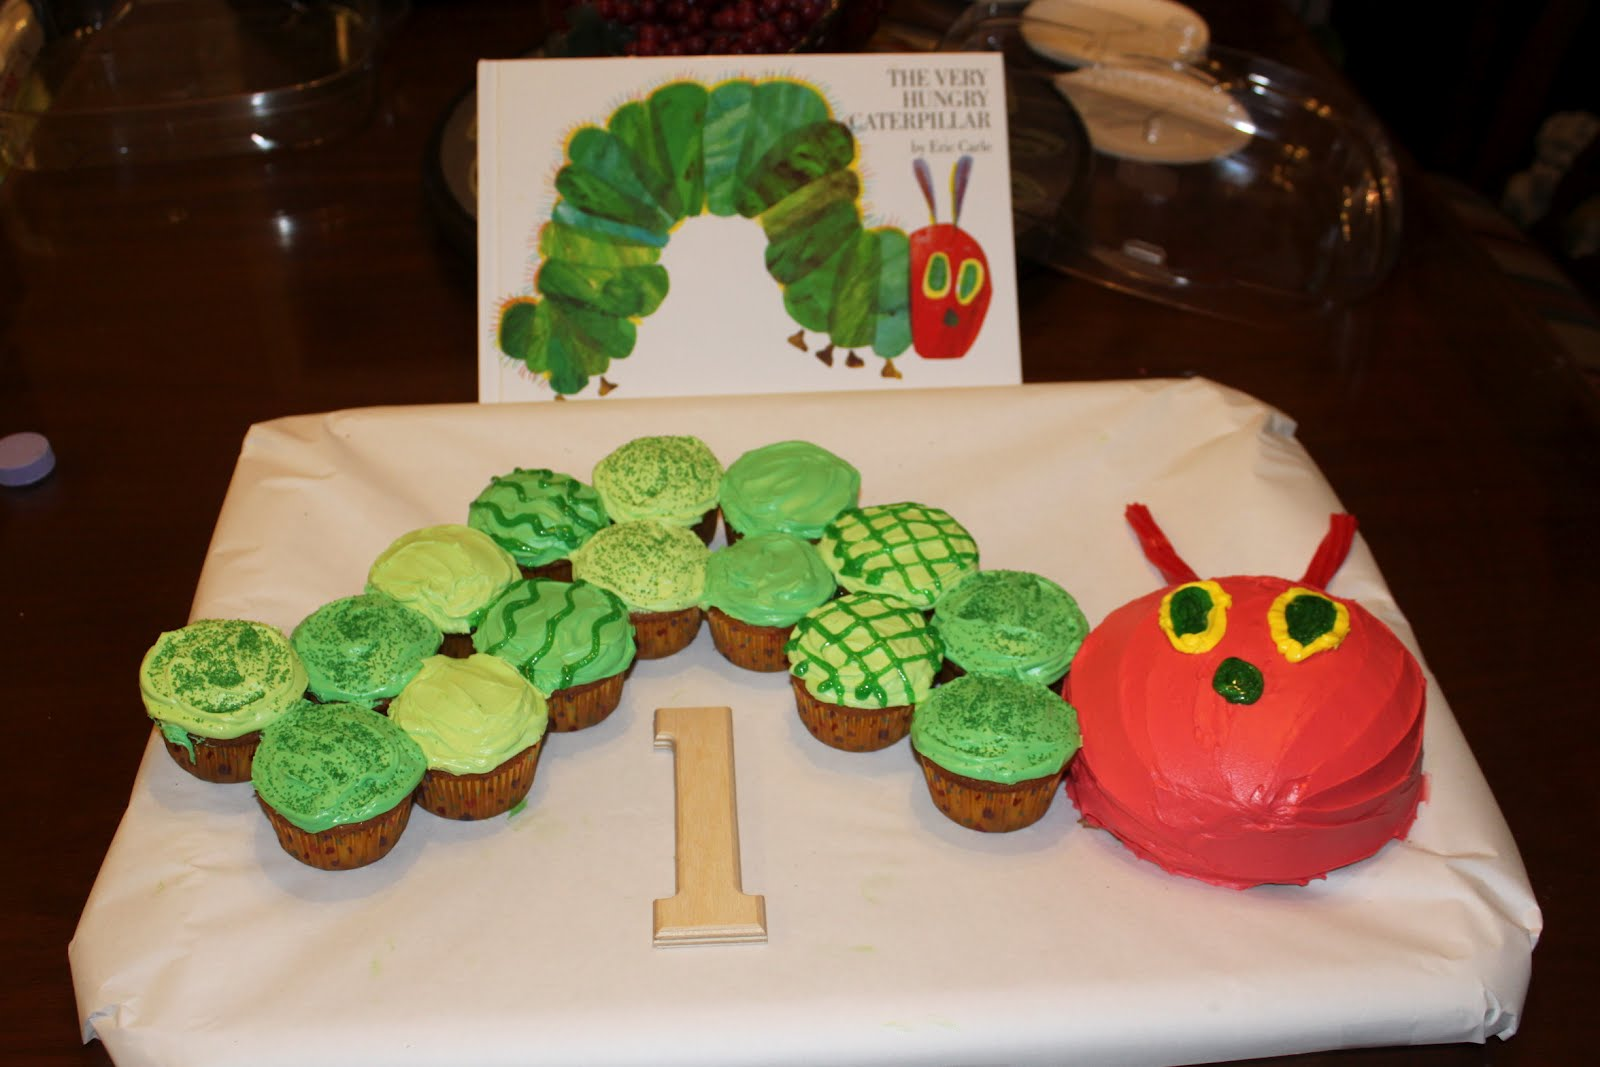 Sarah E Brooks Little As quotVery Hungry Caterpillar